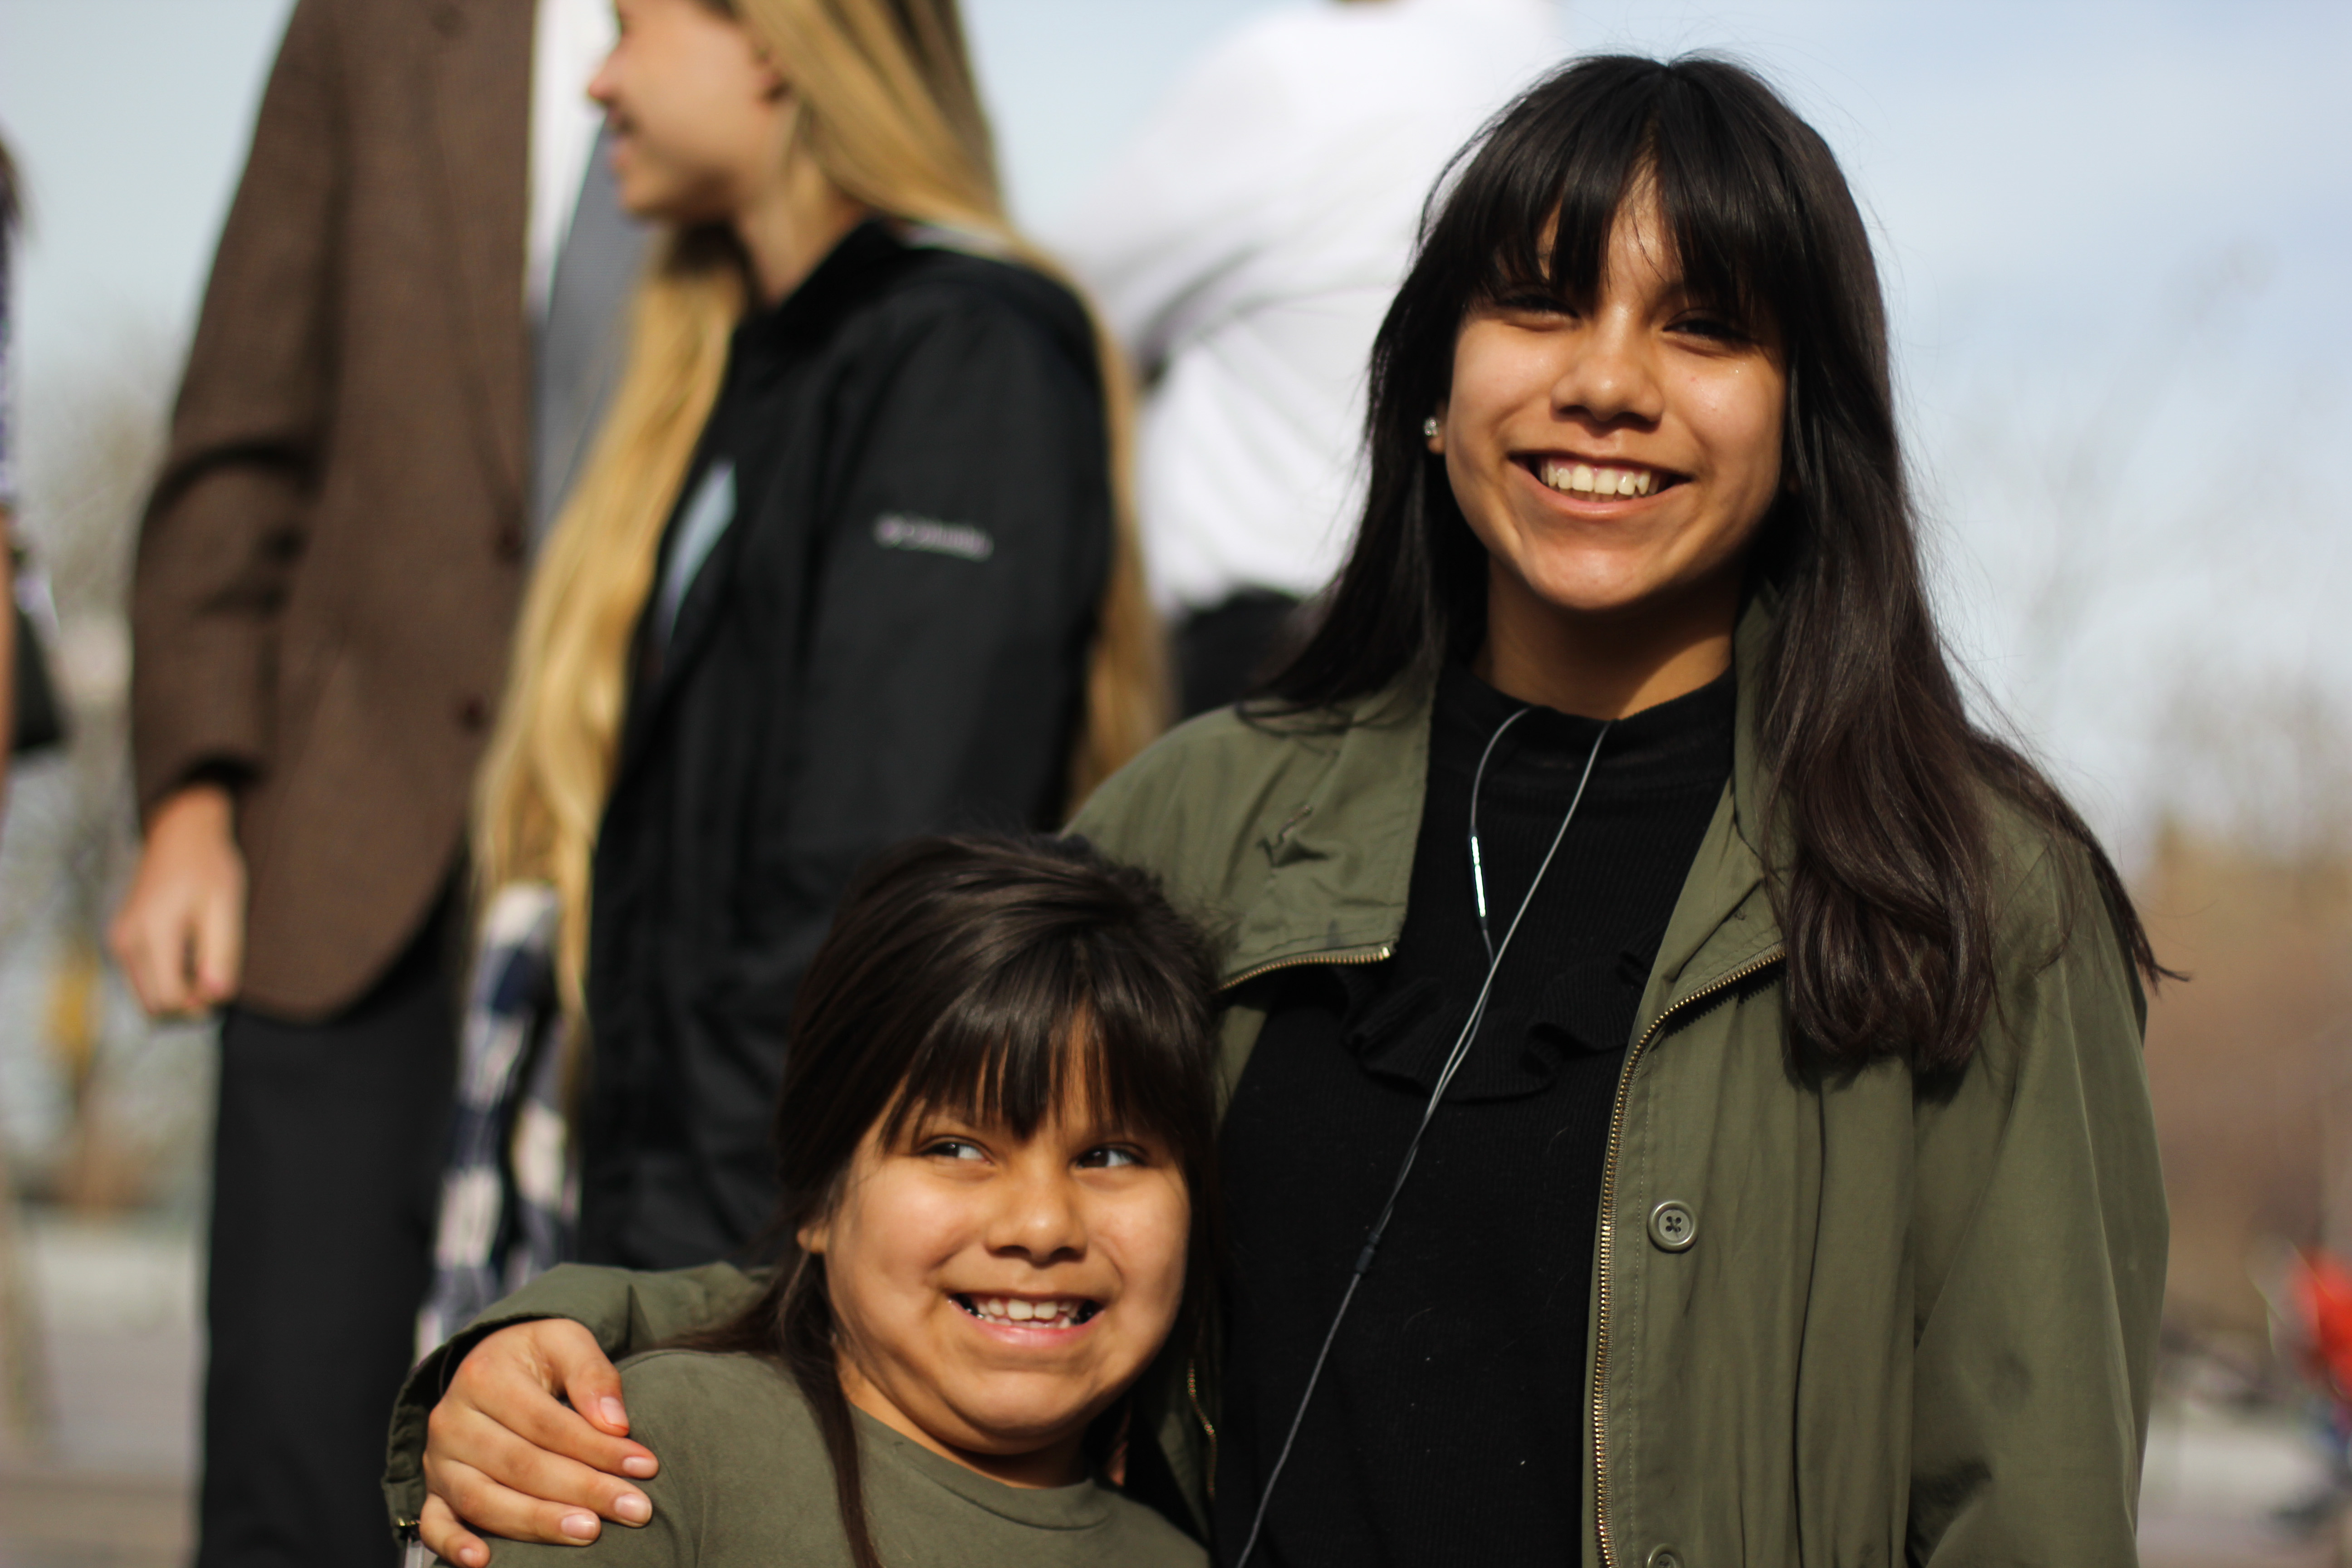 """""""I feel good being here with my little sister and mom. I'm excited to listen to the prophet in person and not just on television."""" Alexa Mendoza"""